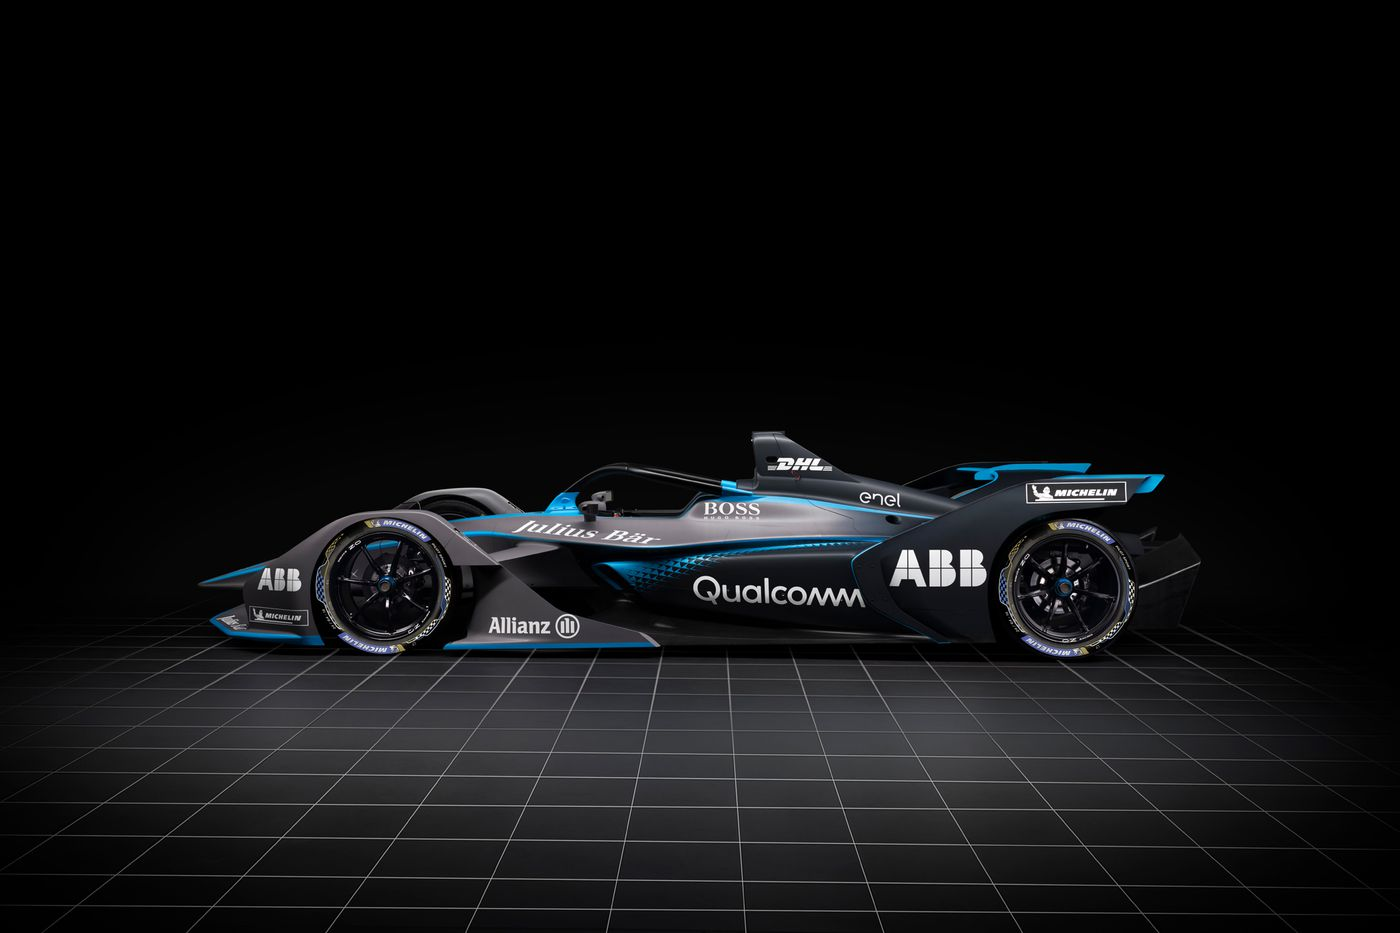 Formula E's wild new racecar makes electric racing look cool - The Verge